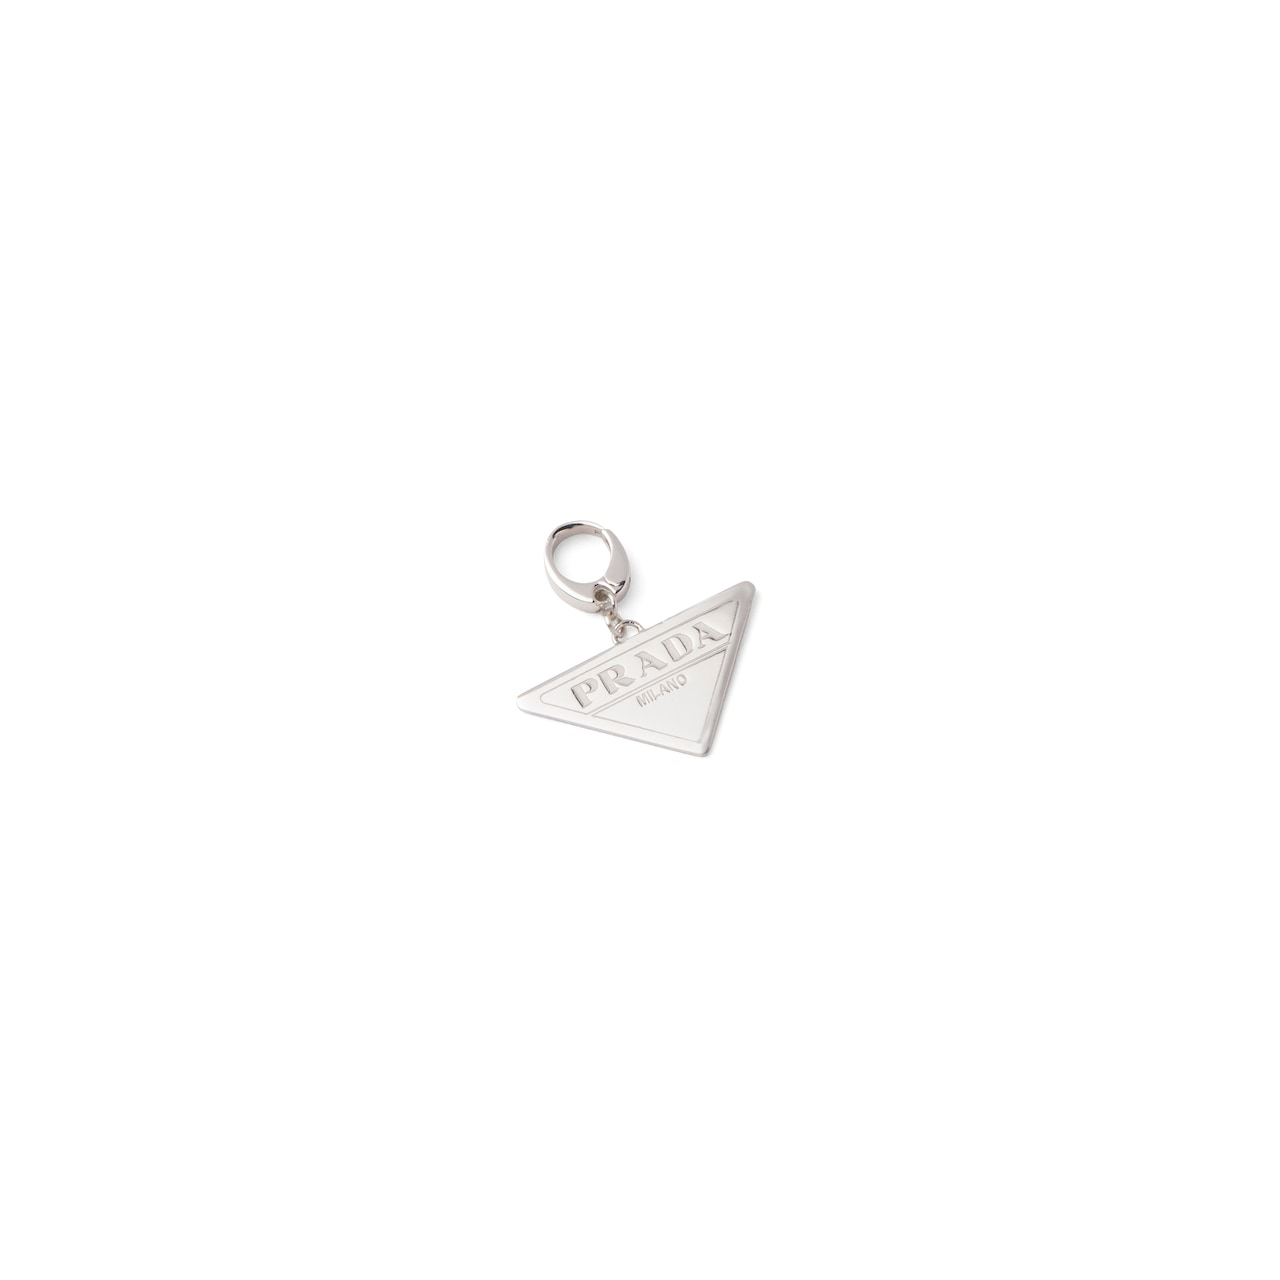 Prada Prada Fine Jewellery Charm with triangle logo 3